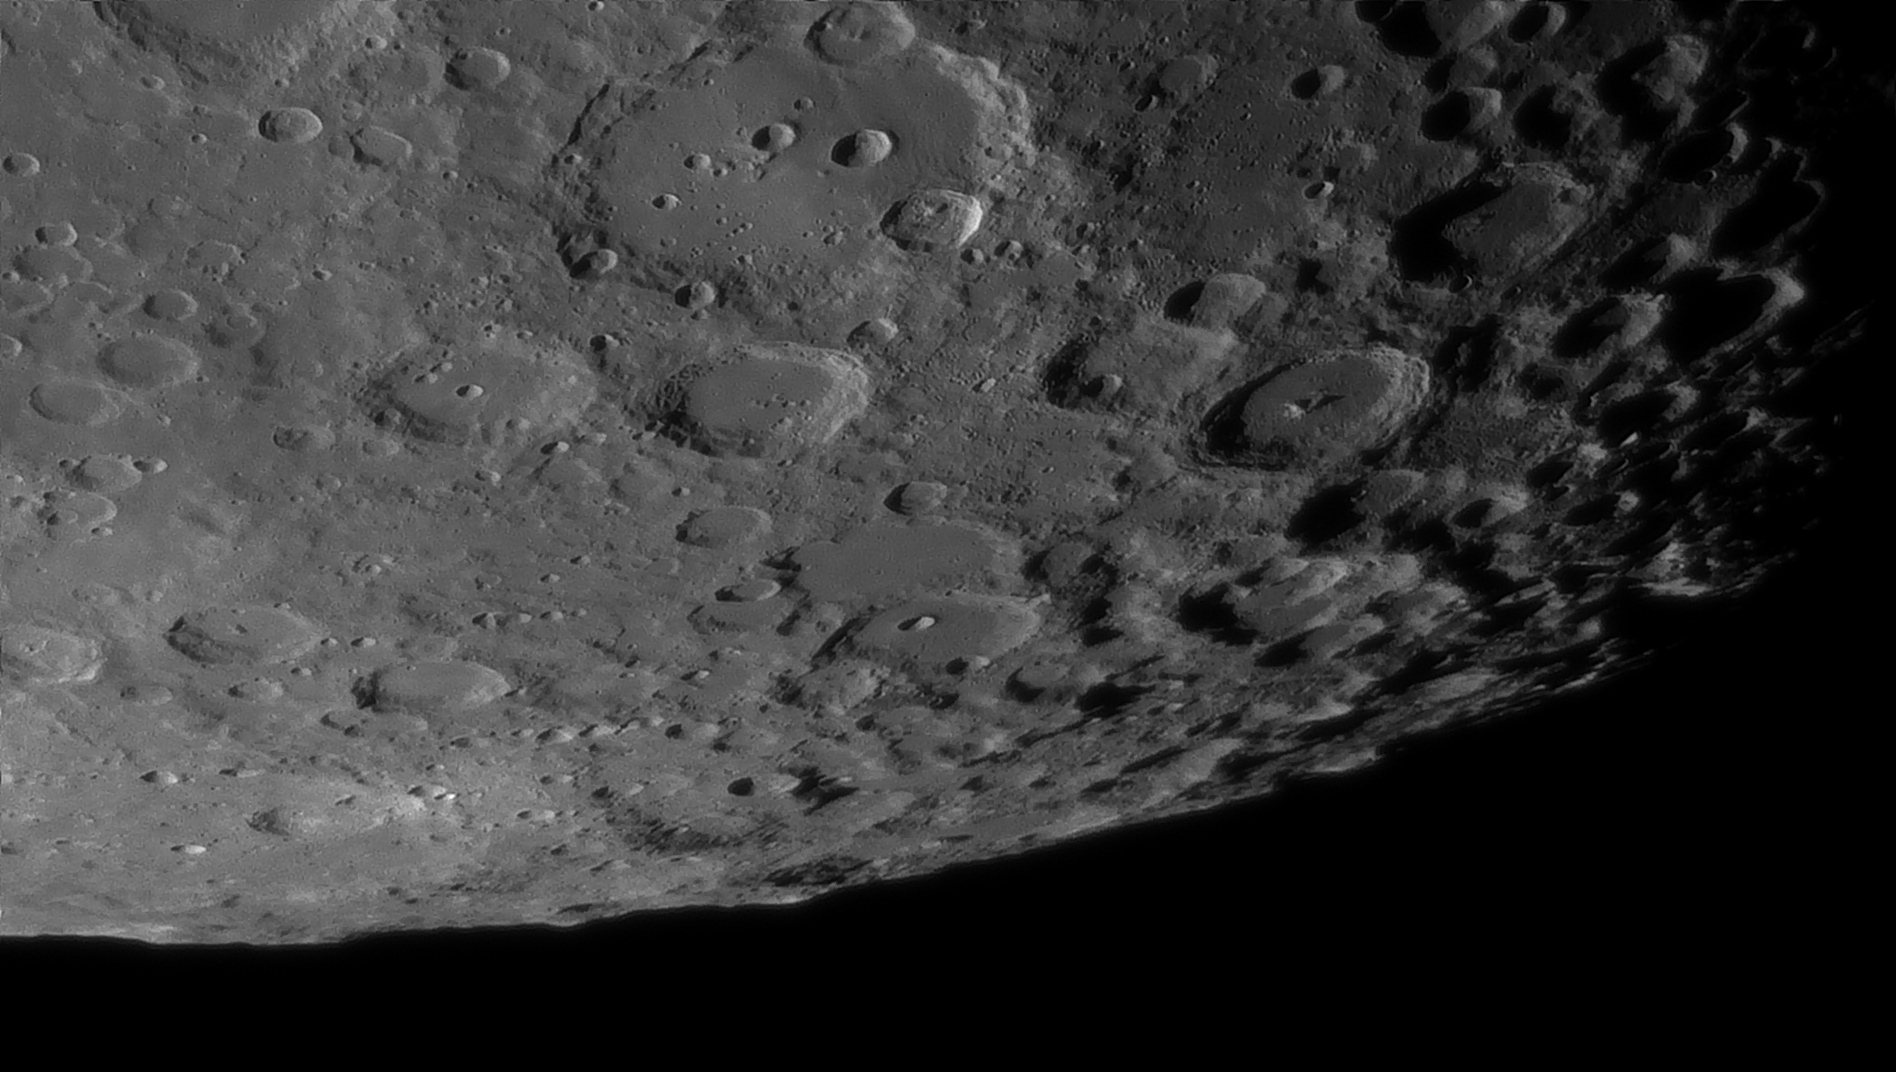 5e51968564d56_Moon_054419_160120_ZWOASI290MM_Rouge_23A_AS_P35_lapl6_ap792_AI_Deconvolution_21--.jpg.484fed263e949671fcd8d31165f22c3b.jpg